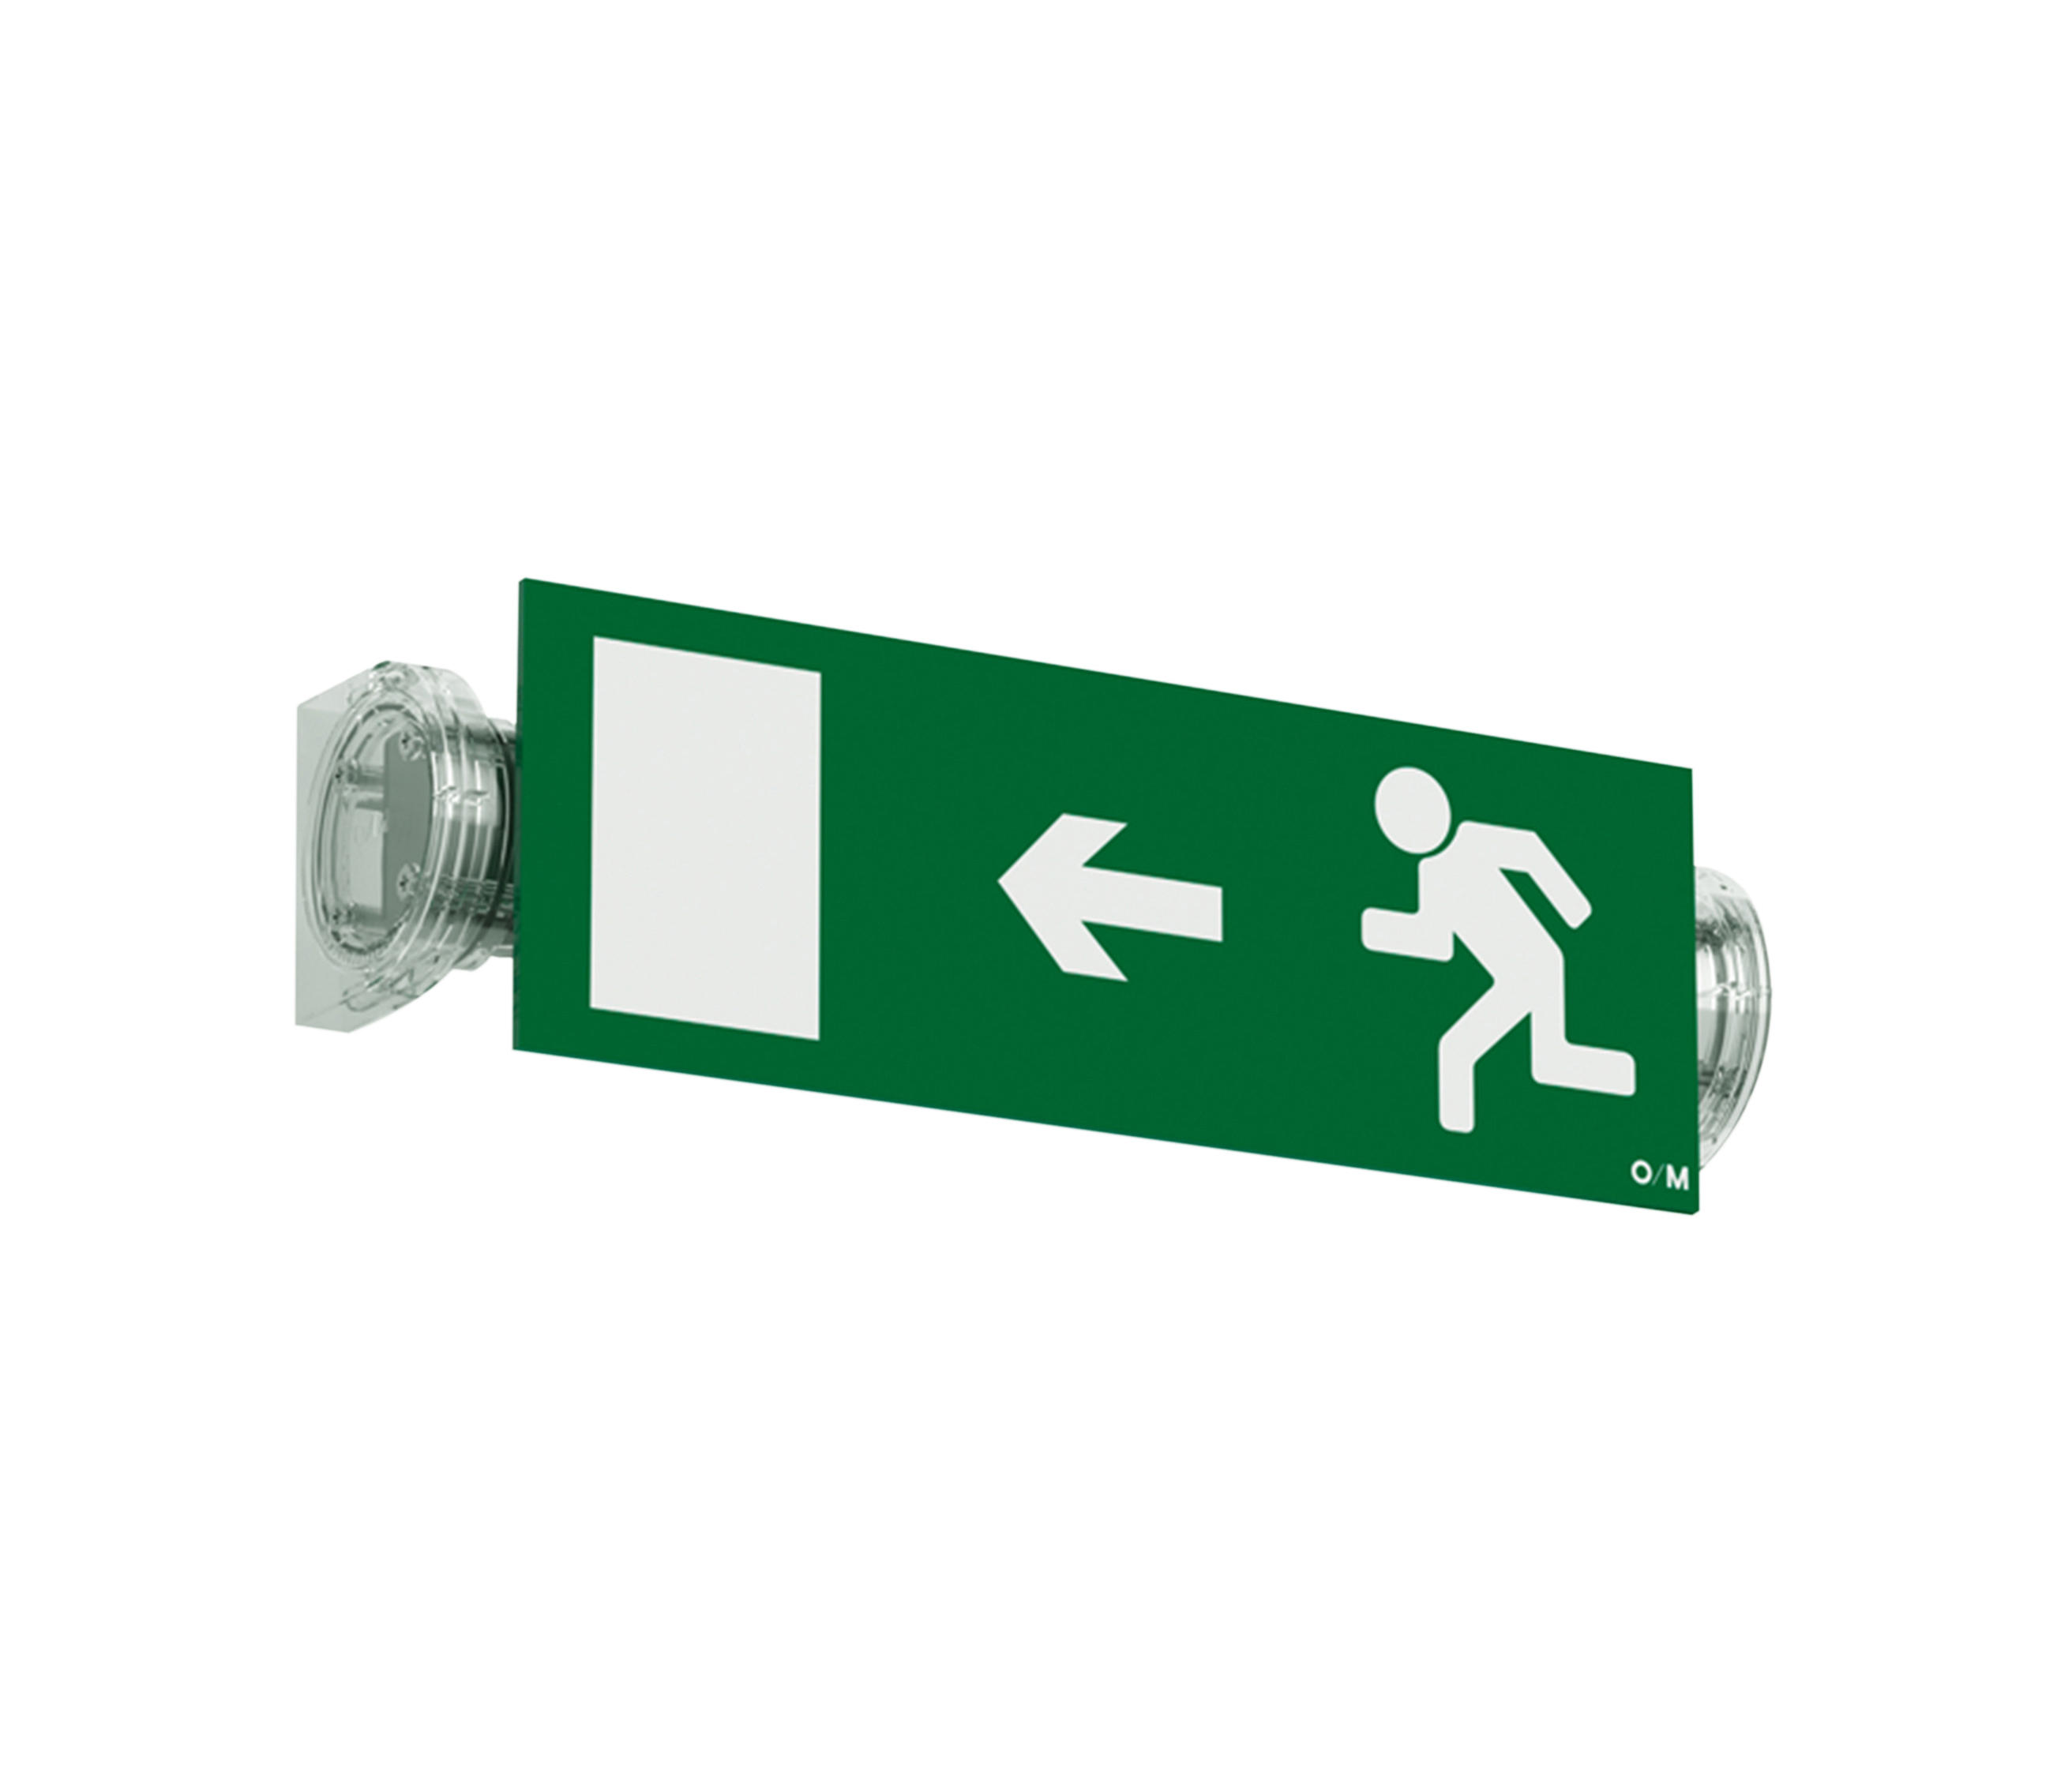 Wall Mounted Emergency Lights : BS - Wall-mounted emergency lights from O/M Architonic